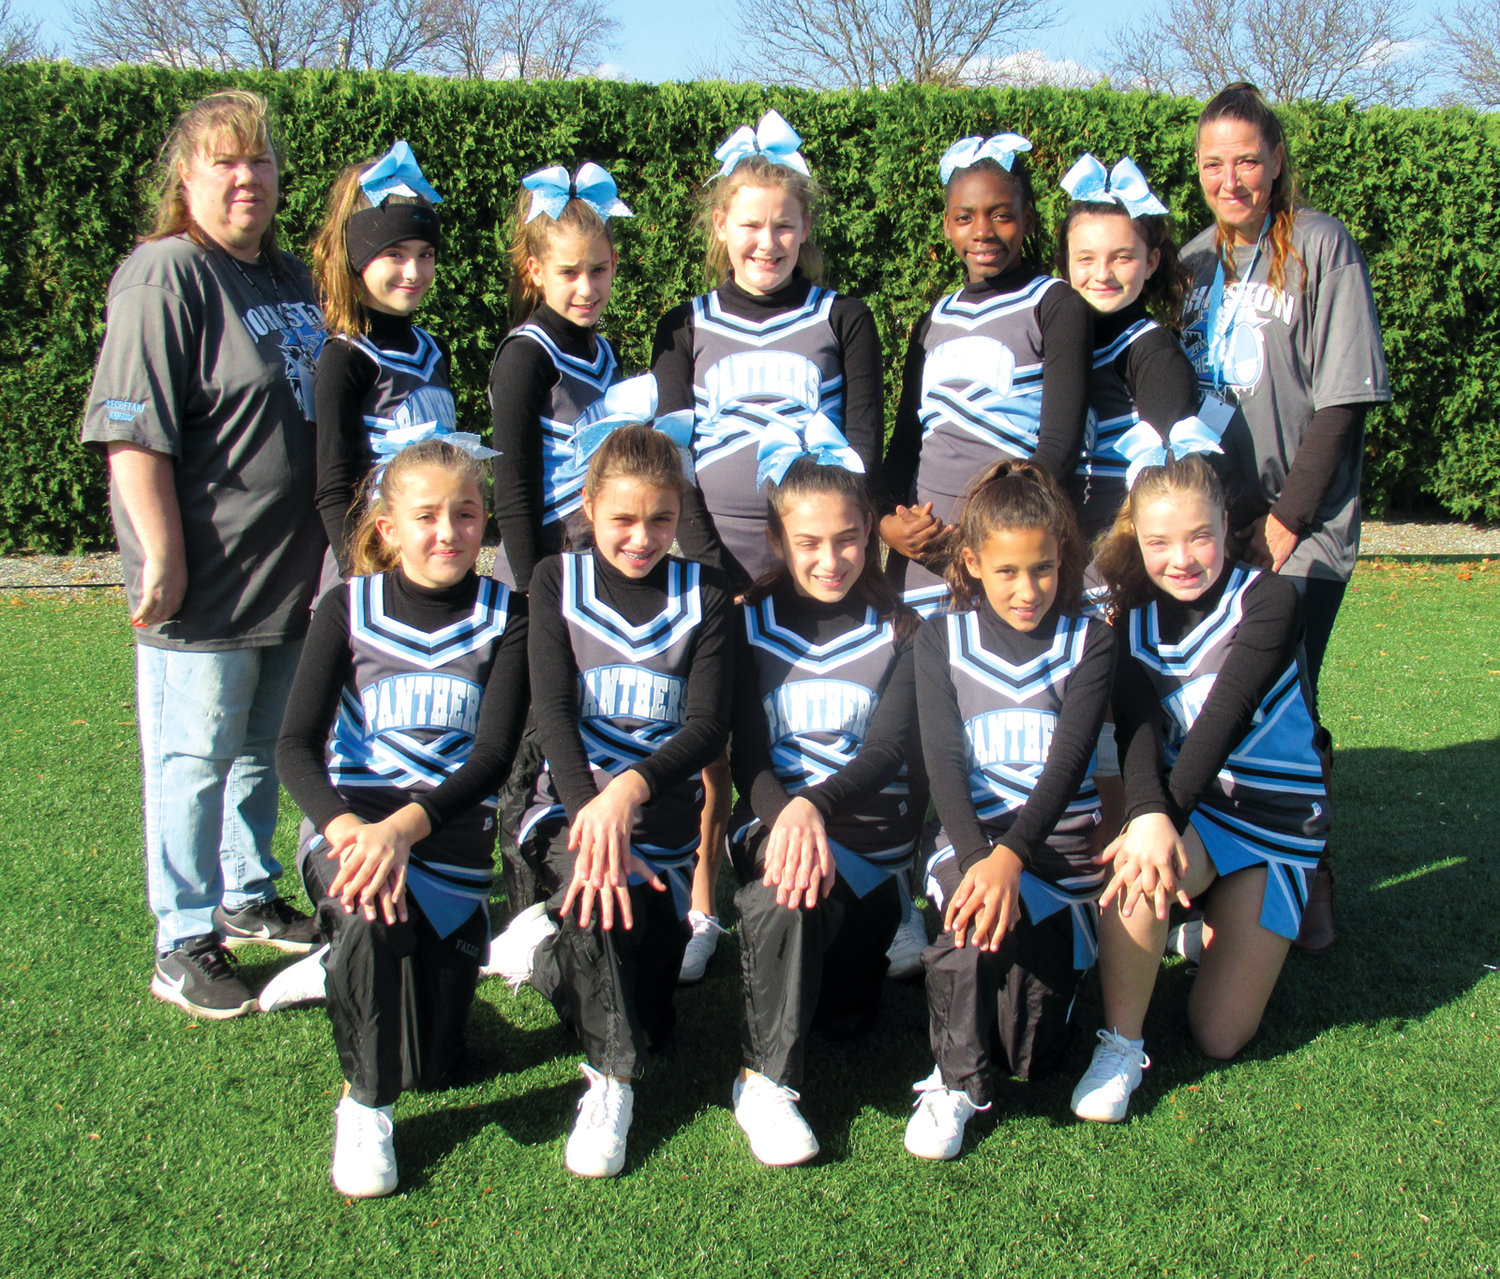 SPIRIT SQUAD: Among the young girls who cheered the U-12 Panthers on during the recently-completed football season are, in front from left: Fallon Davis, Isabella Senno,      Isabella DeVecchis, Sianna Molina and Chantelle Lacasse. Top: Head Coach Sherri Lyons, Alexa Delmonaco, Arianna Perron, Dakota Tomlin, I'Daizha Brown, Angelia Allard and Coach Penny Lewis.